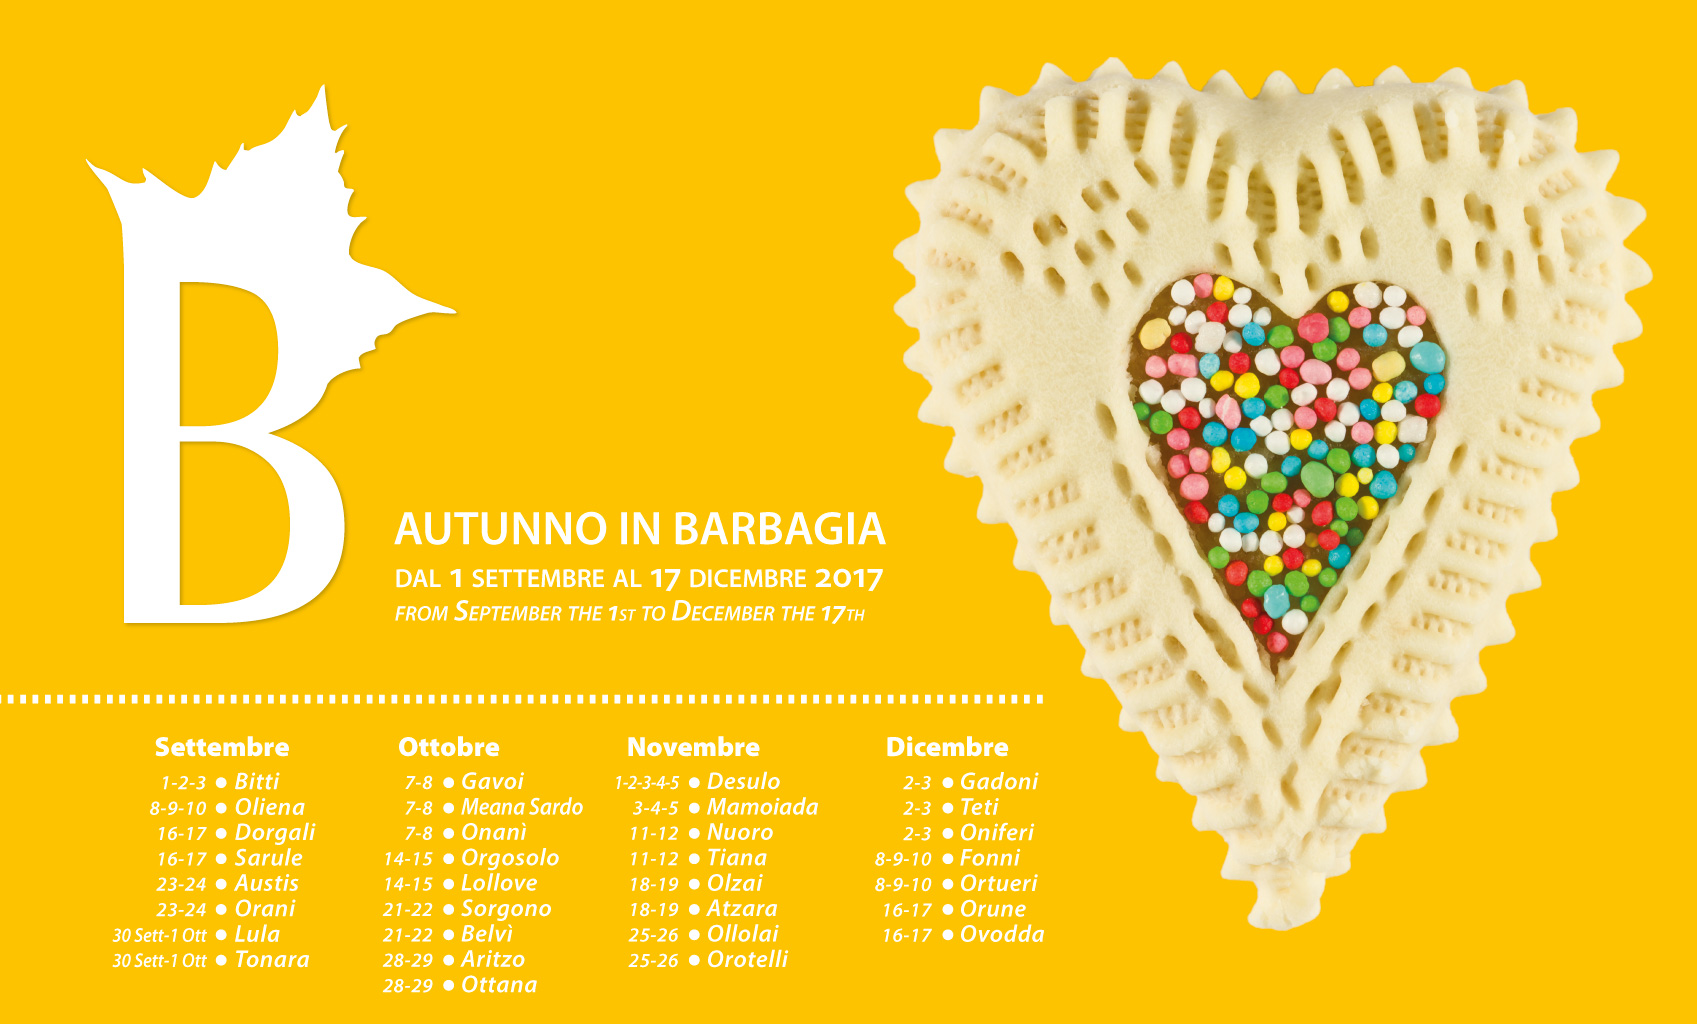 Calendario Autunno in Barbagia 2017